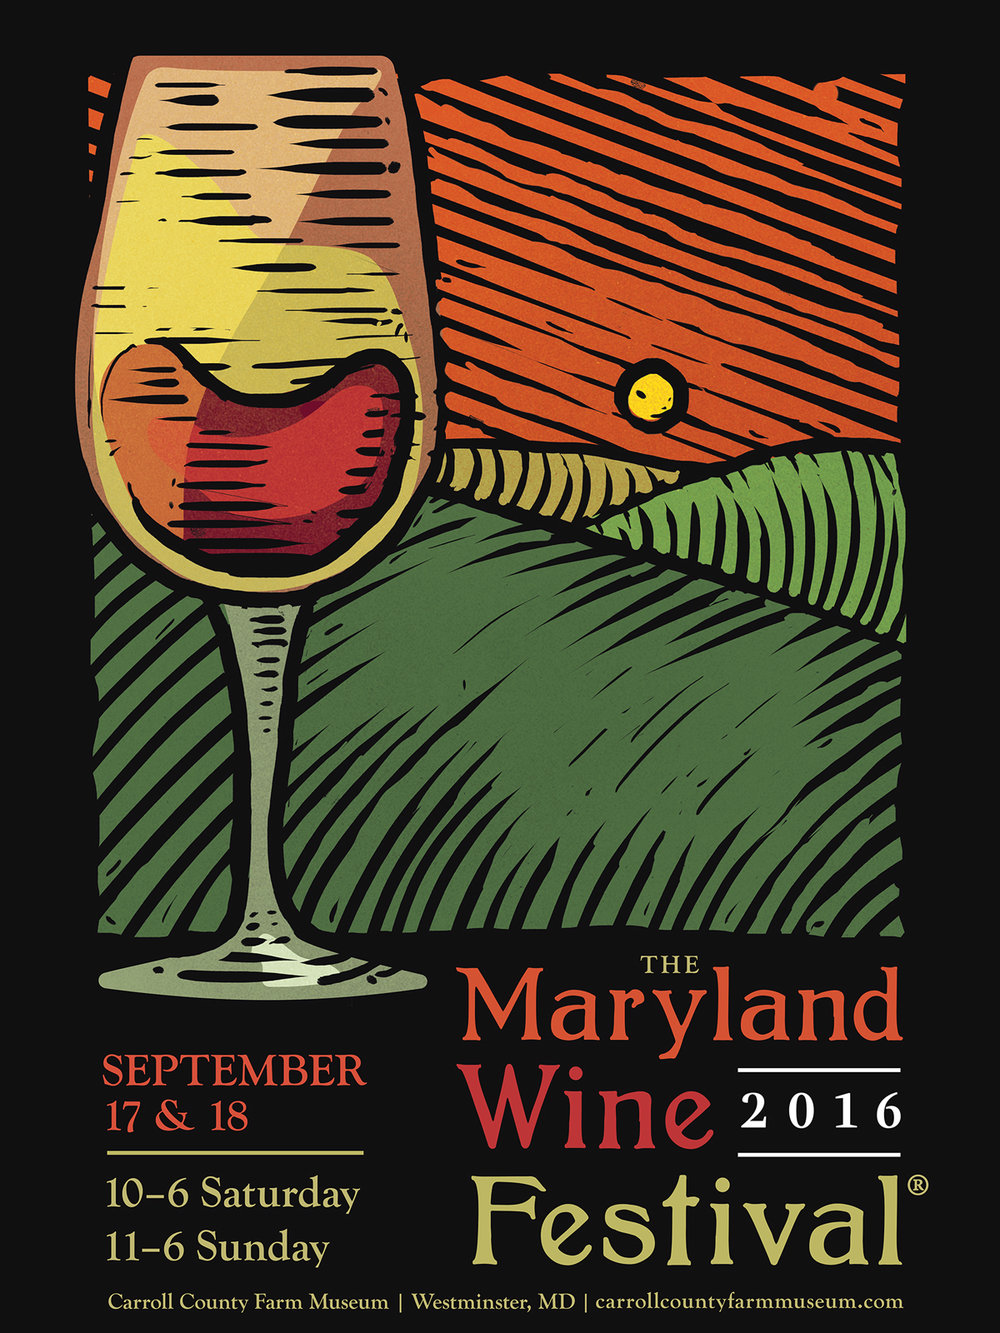 2016 Maryland Wine Festival - Runner-up submission for the 2016 Maryland Wine Festival call to artists.←back